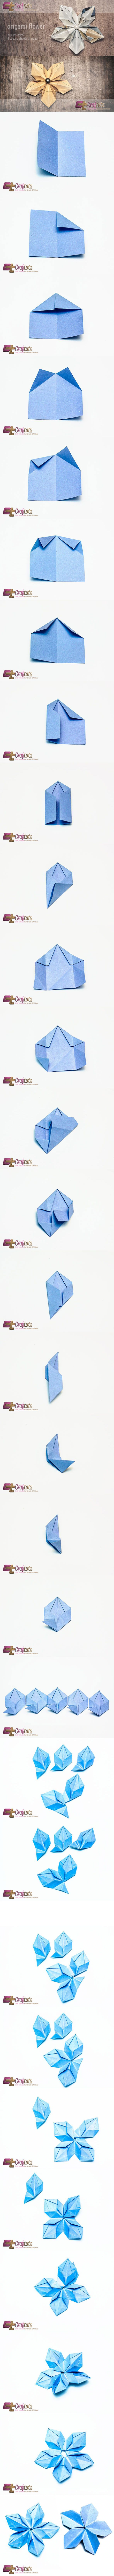 Origami Flower Video Tutorial Step By Step Instructions From